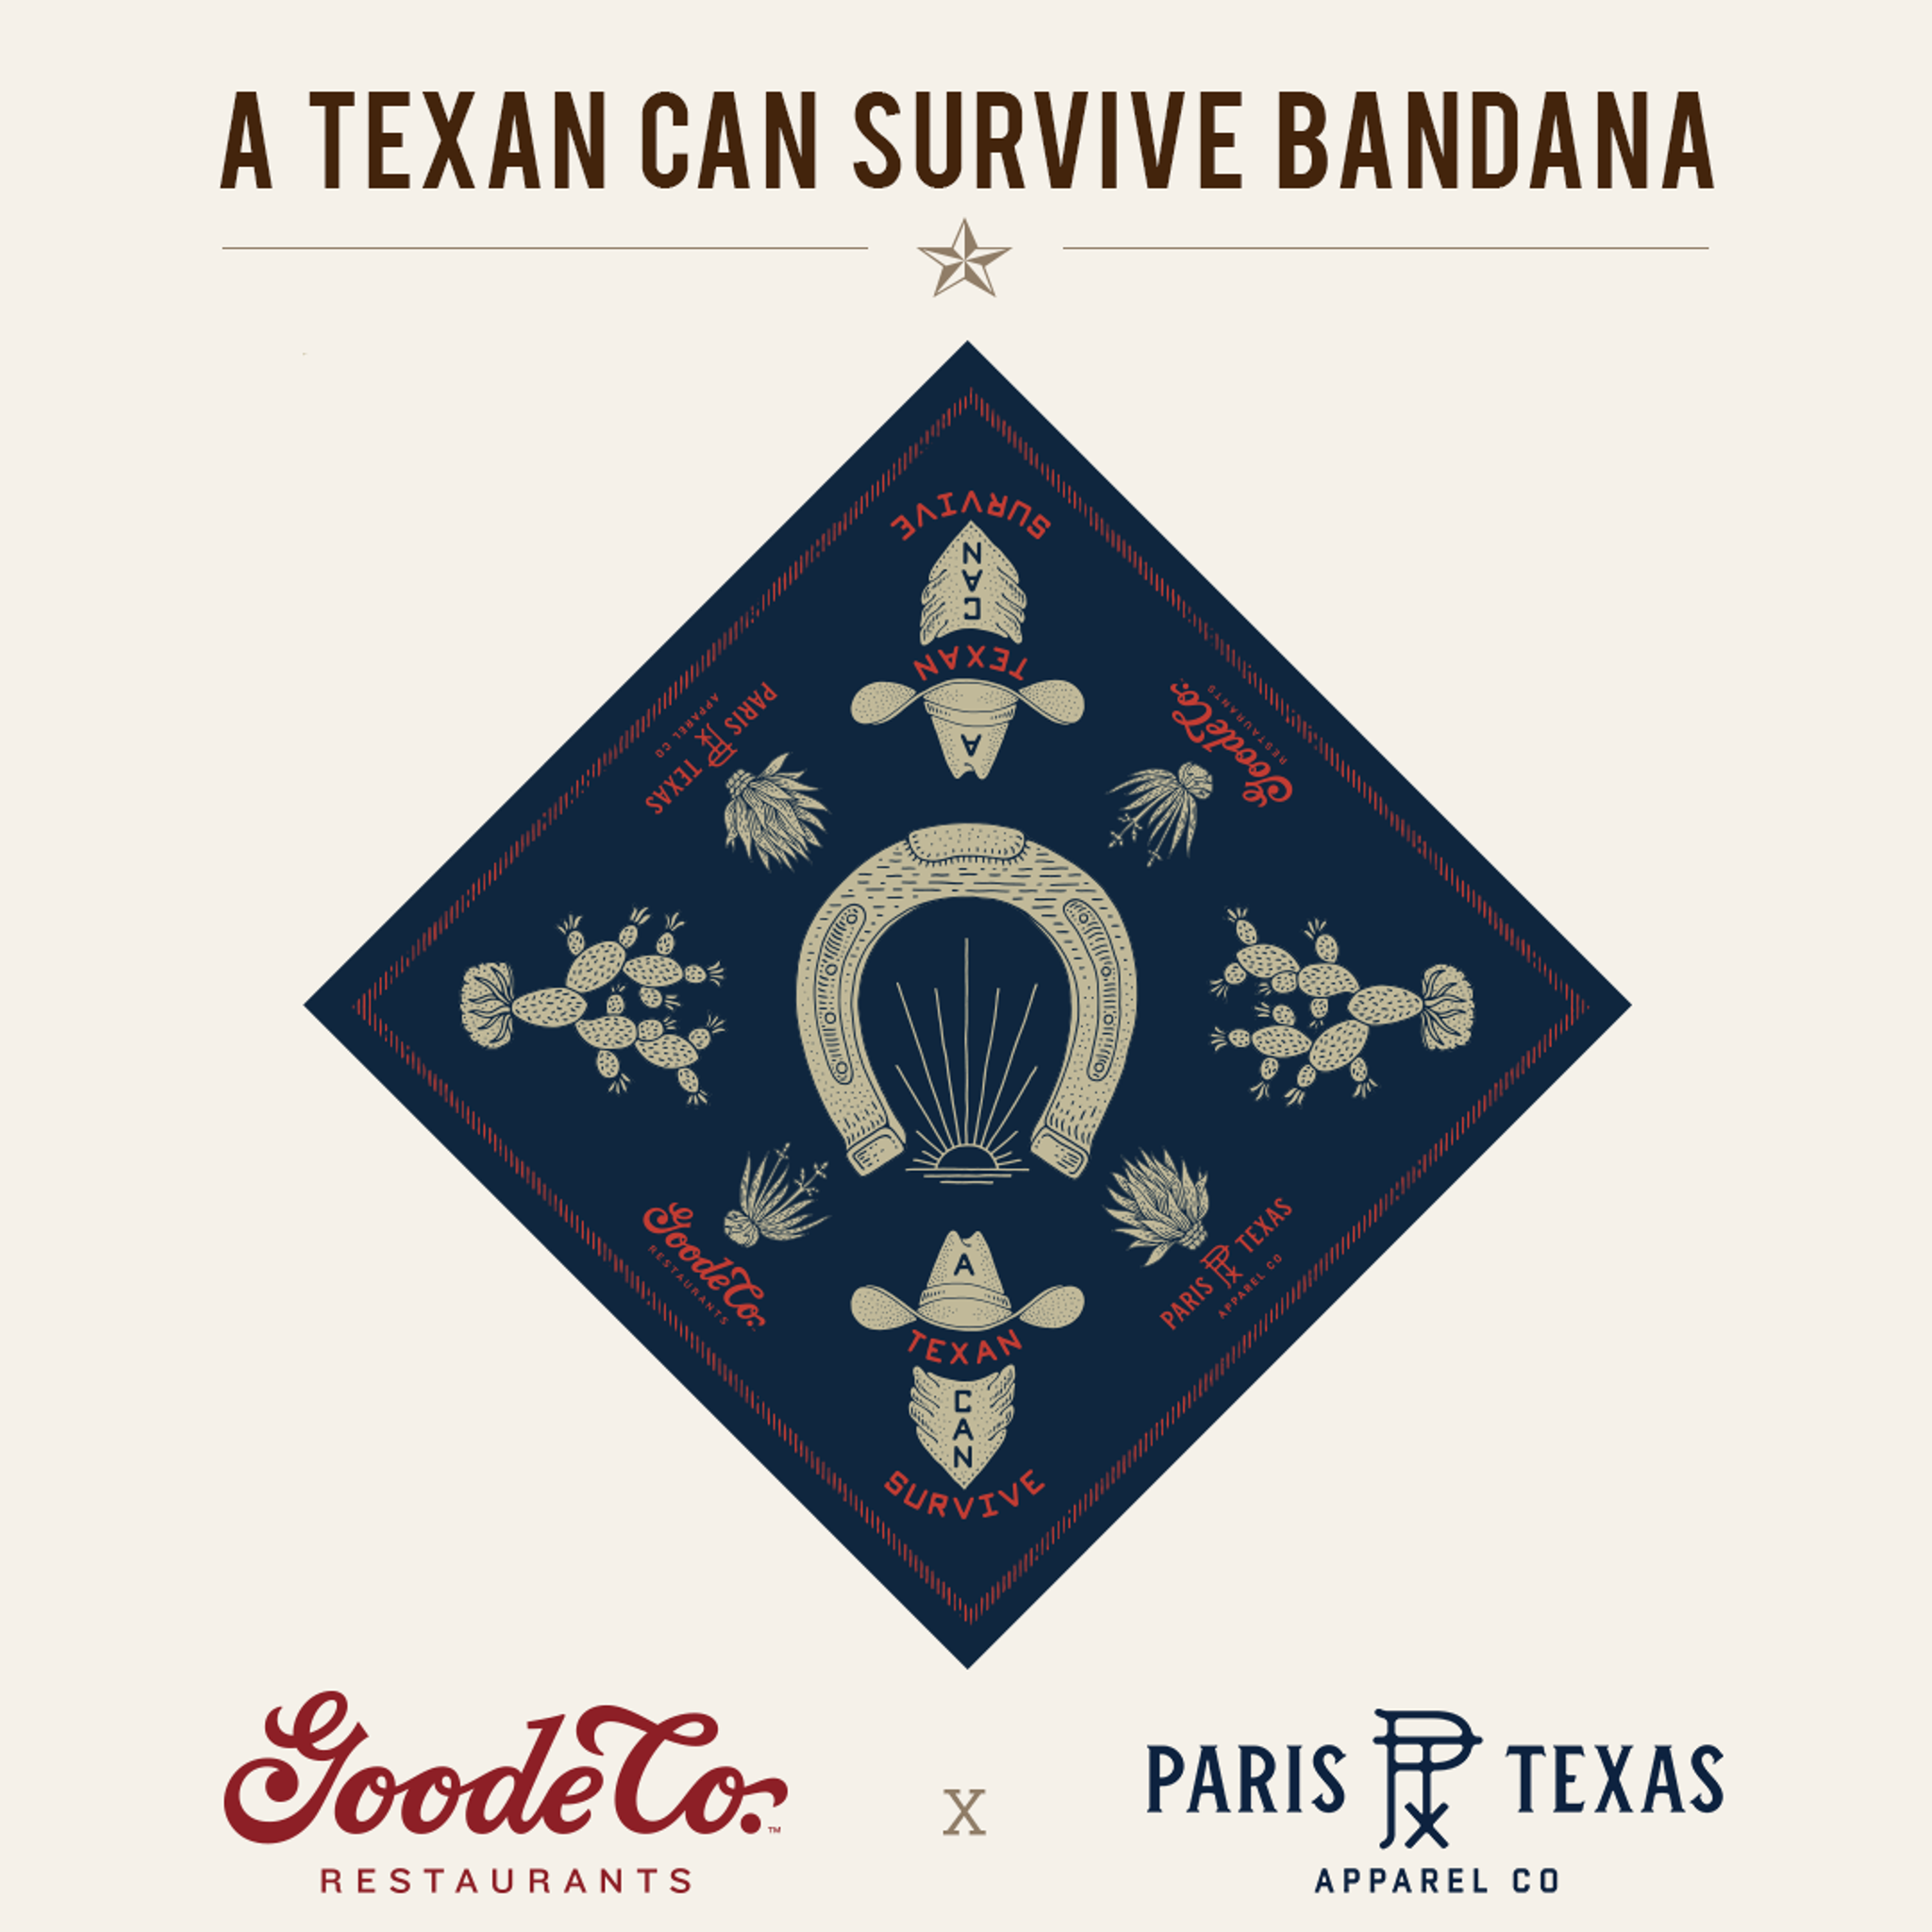 """Stylish Bandana from Goode Co x Paris TX Apparel Co collaboration with """"A Texan Can Survive Bandana"""" in dark font and illustrations of a horseshoe, cacti plants, cowboy hates, and agave plants."""